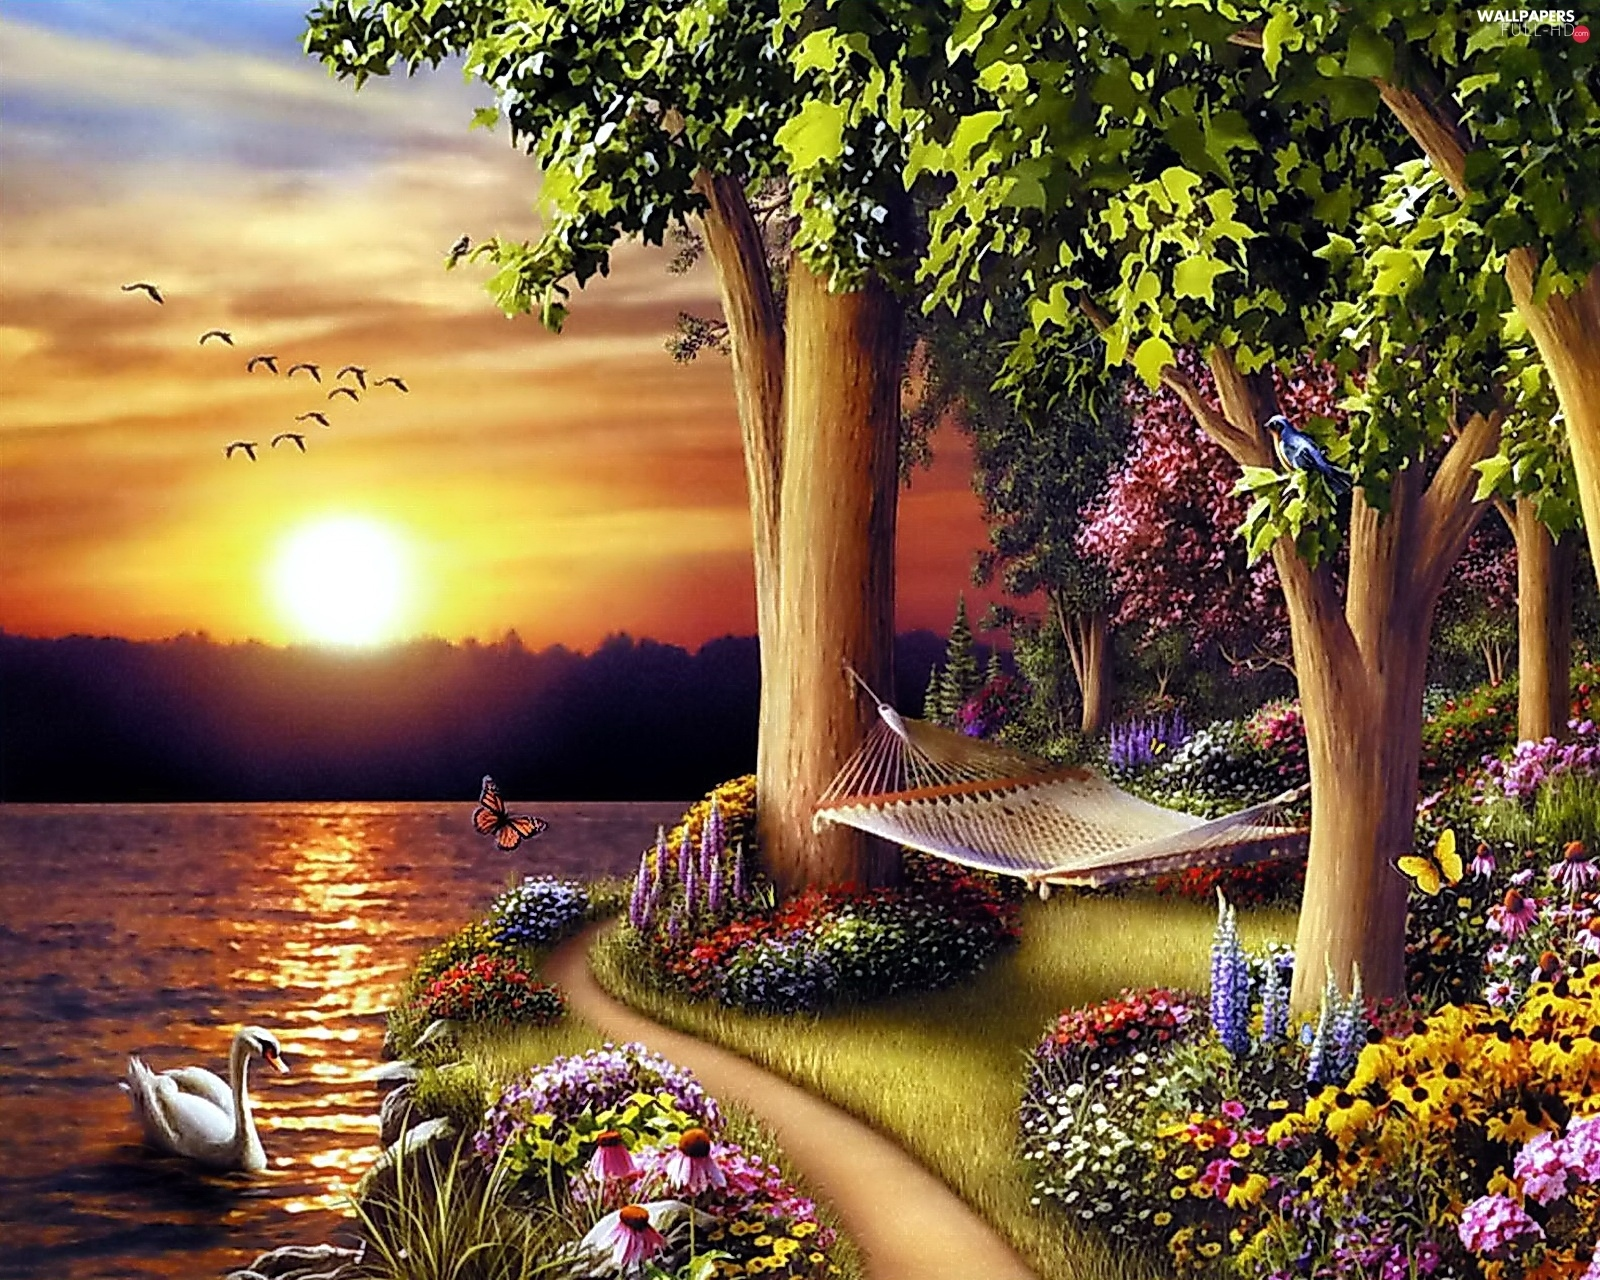 Flowers, Hammock, trees, lake, viewes